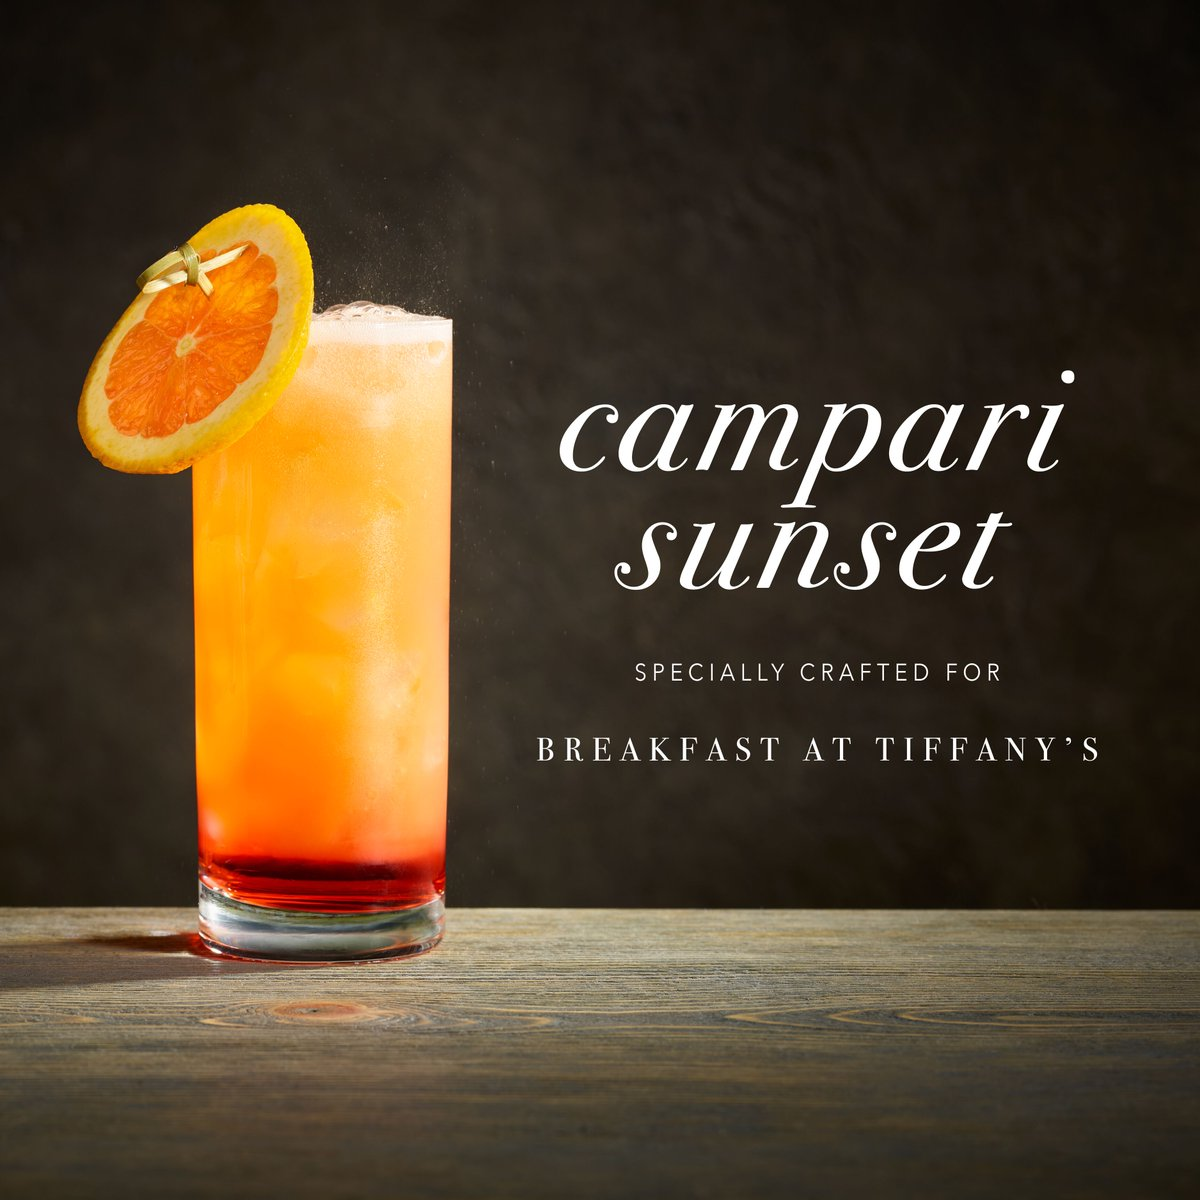 Sweeten up your cinema experience with the #GreatestFilmsofAllTime, and enjoy a Signature Cocktail while you're at it! Our delicious Campari Sunset pairs perfectly with the iconic BREAKFAST AT TIFFANY'S! http://ow.ly/LUeB50xRhDEpic.twitter.com/0LJZcOjKI8